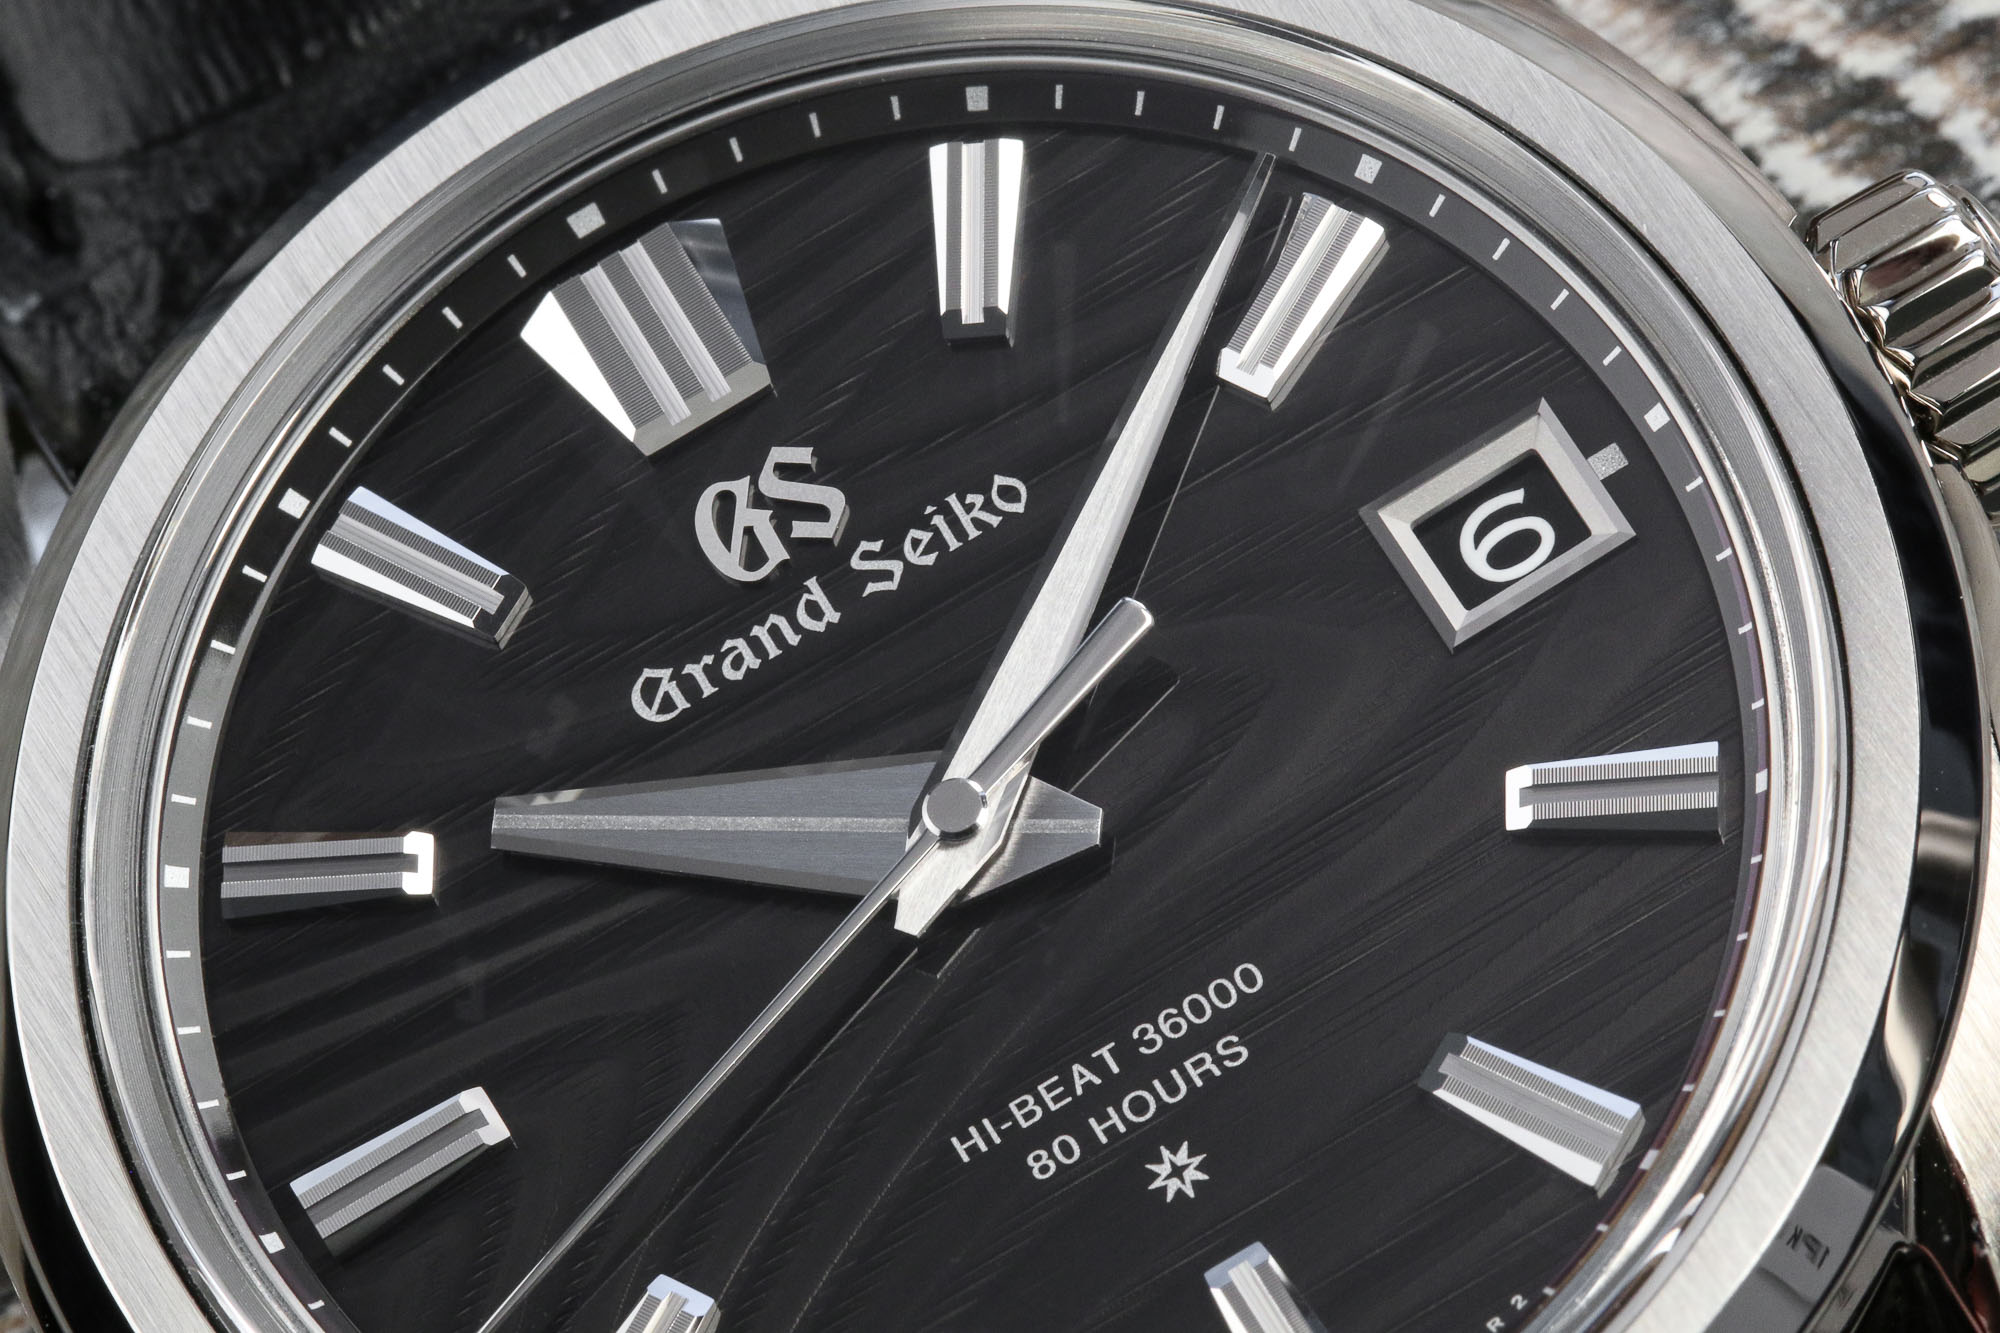 Grand Seiko SLGH007 dark dial stainless steel wristwatch.